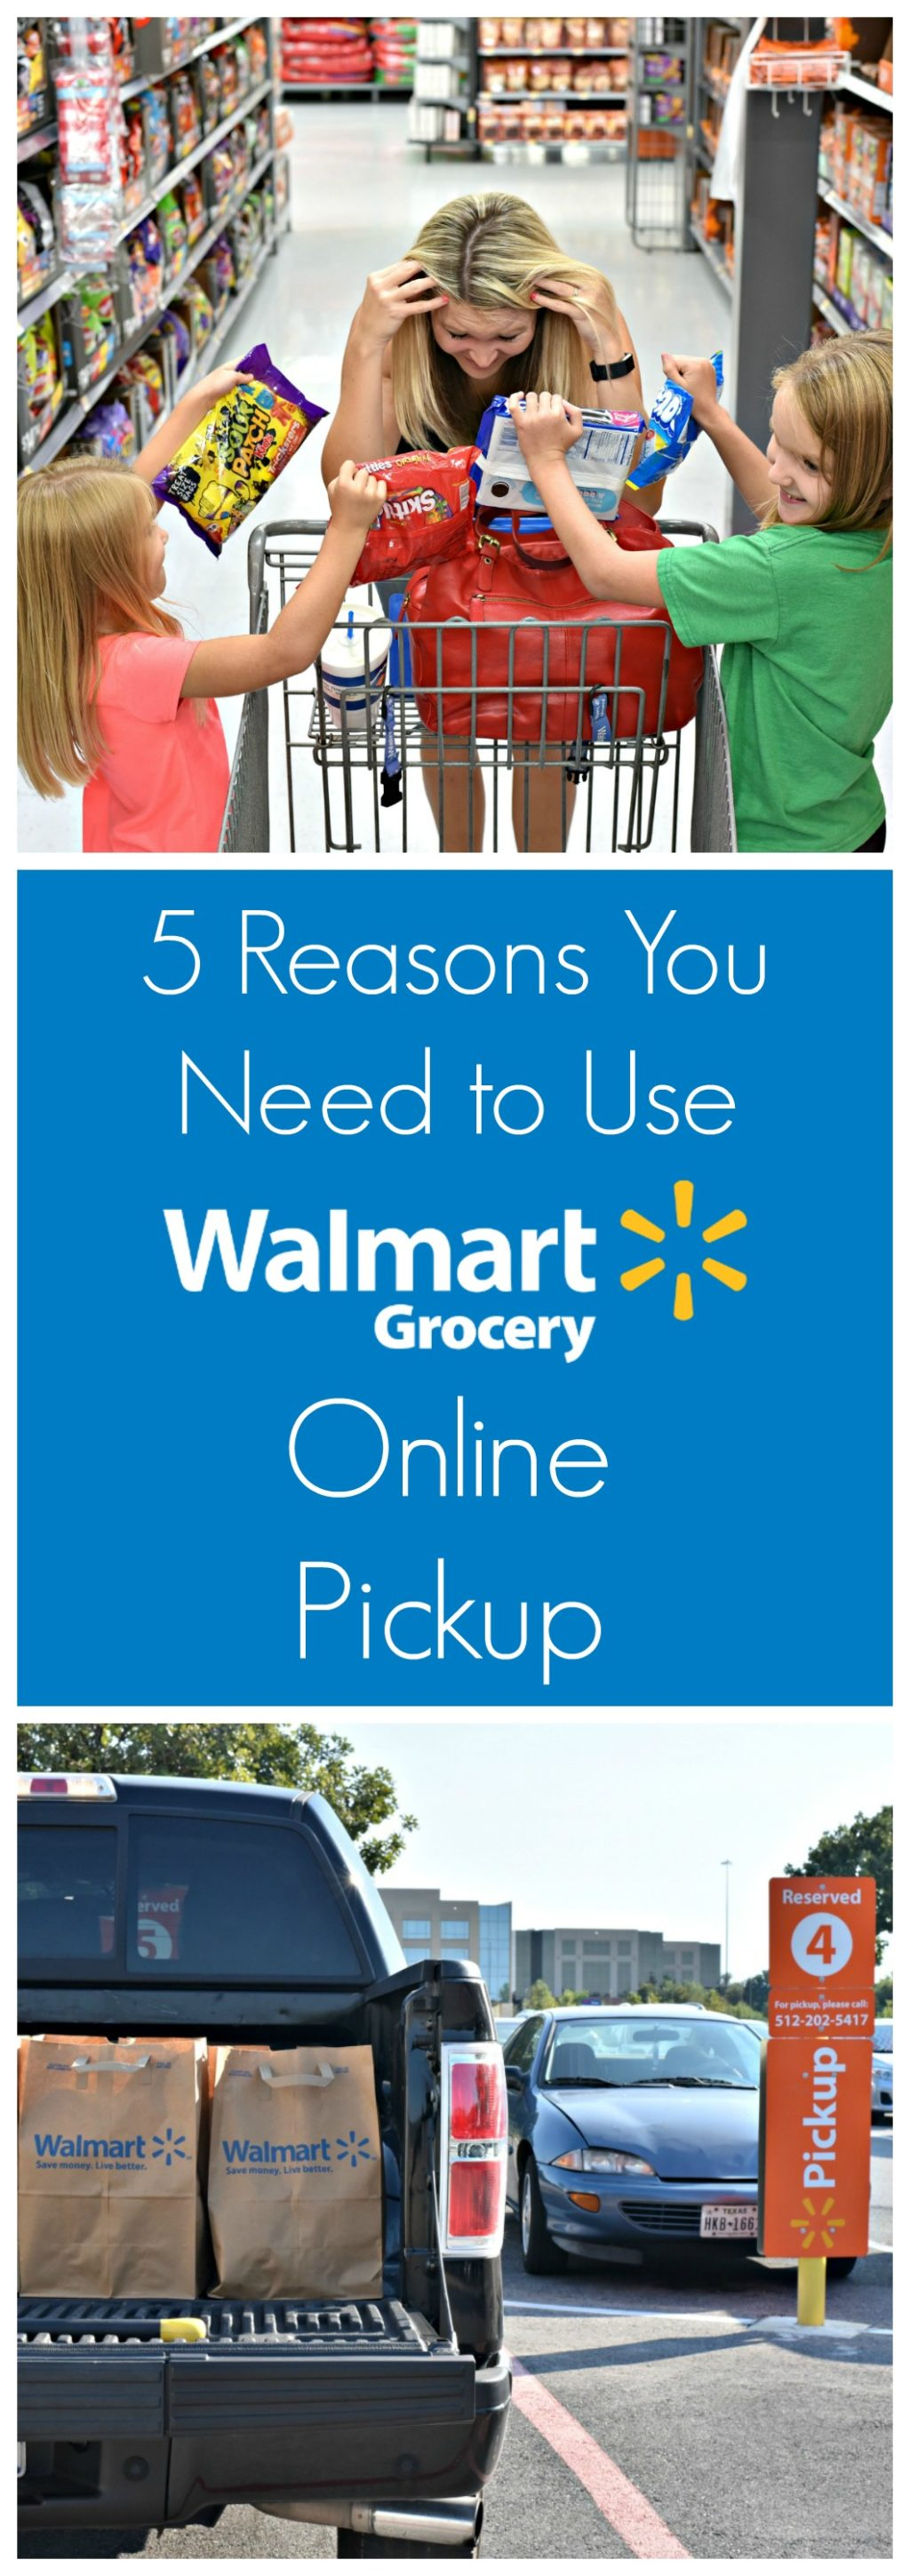 Grocery shopping with kids is hard work and a chore. Here are 5 Reasons You Need to Use Walmart Grocery Online Pickup Service to save time and your sanity!